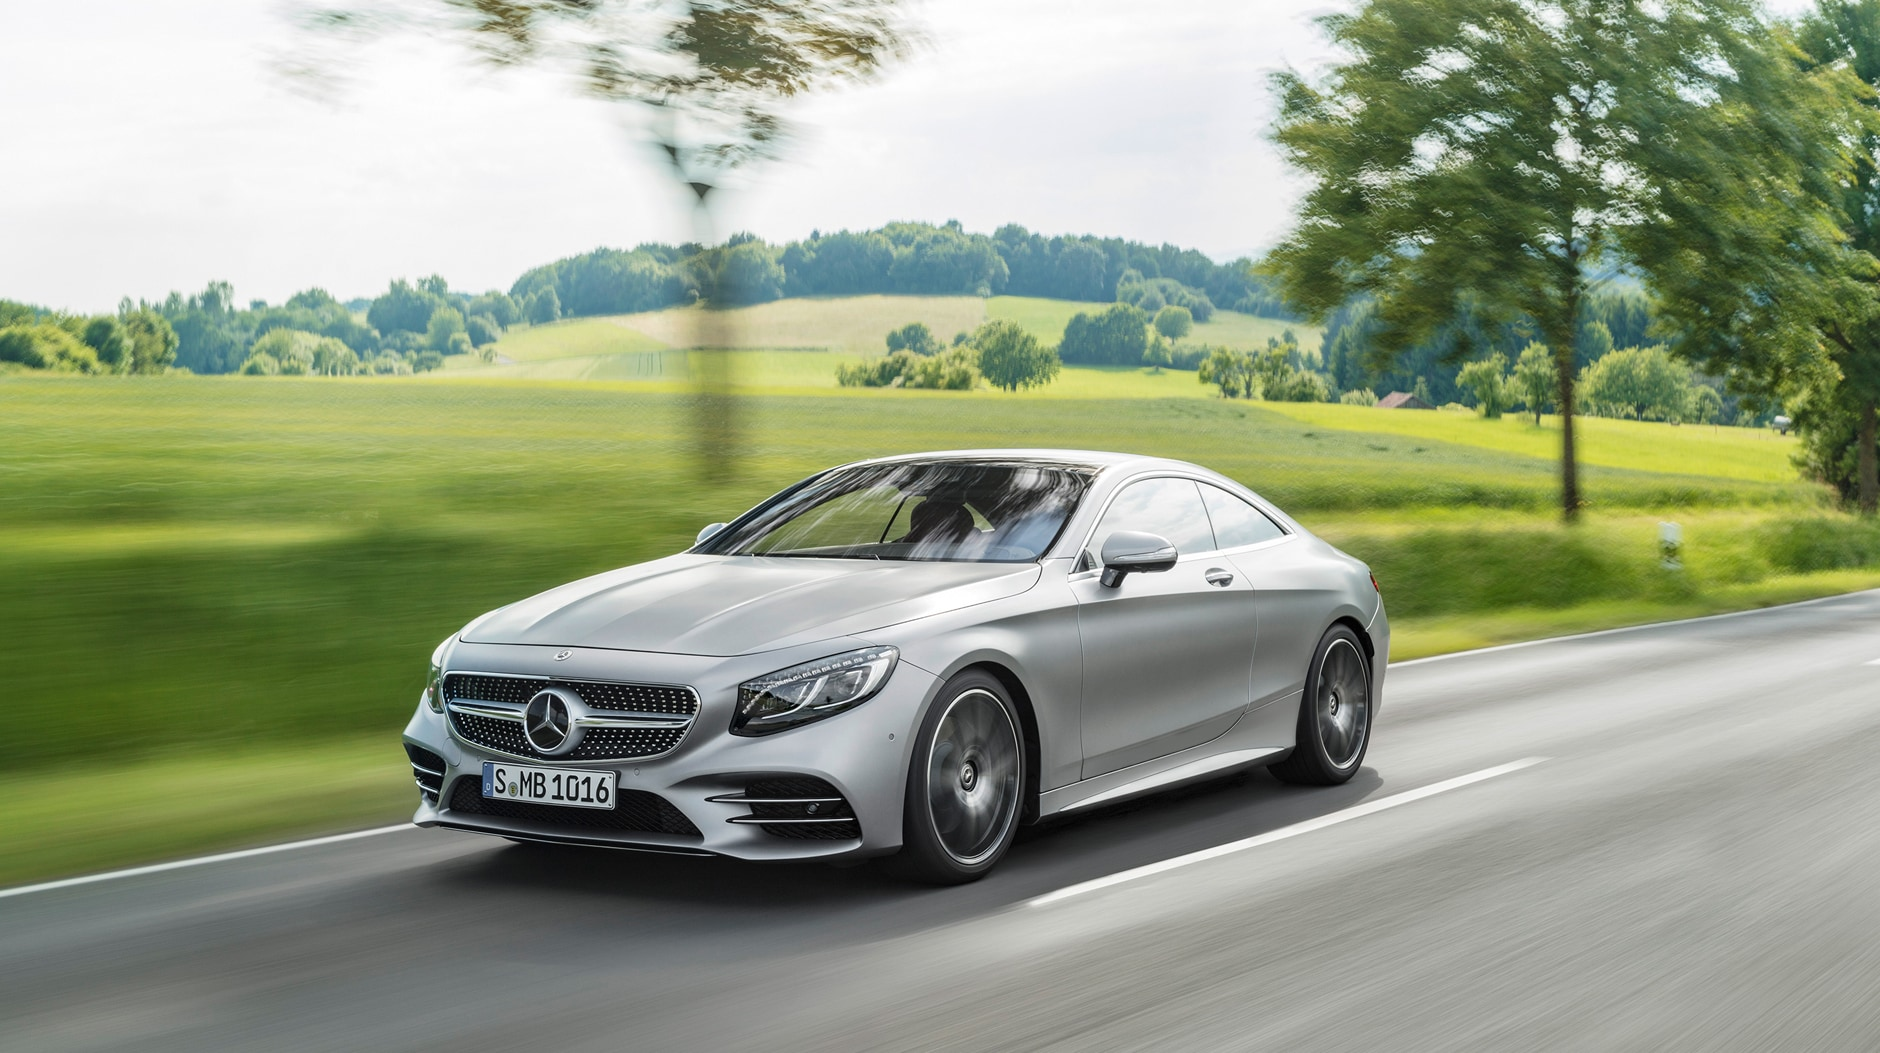 2018 Mercedes Benz S Class Coupe Front